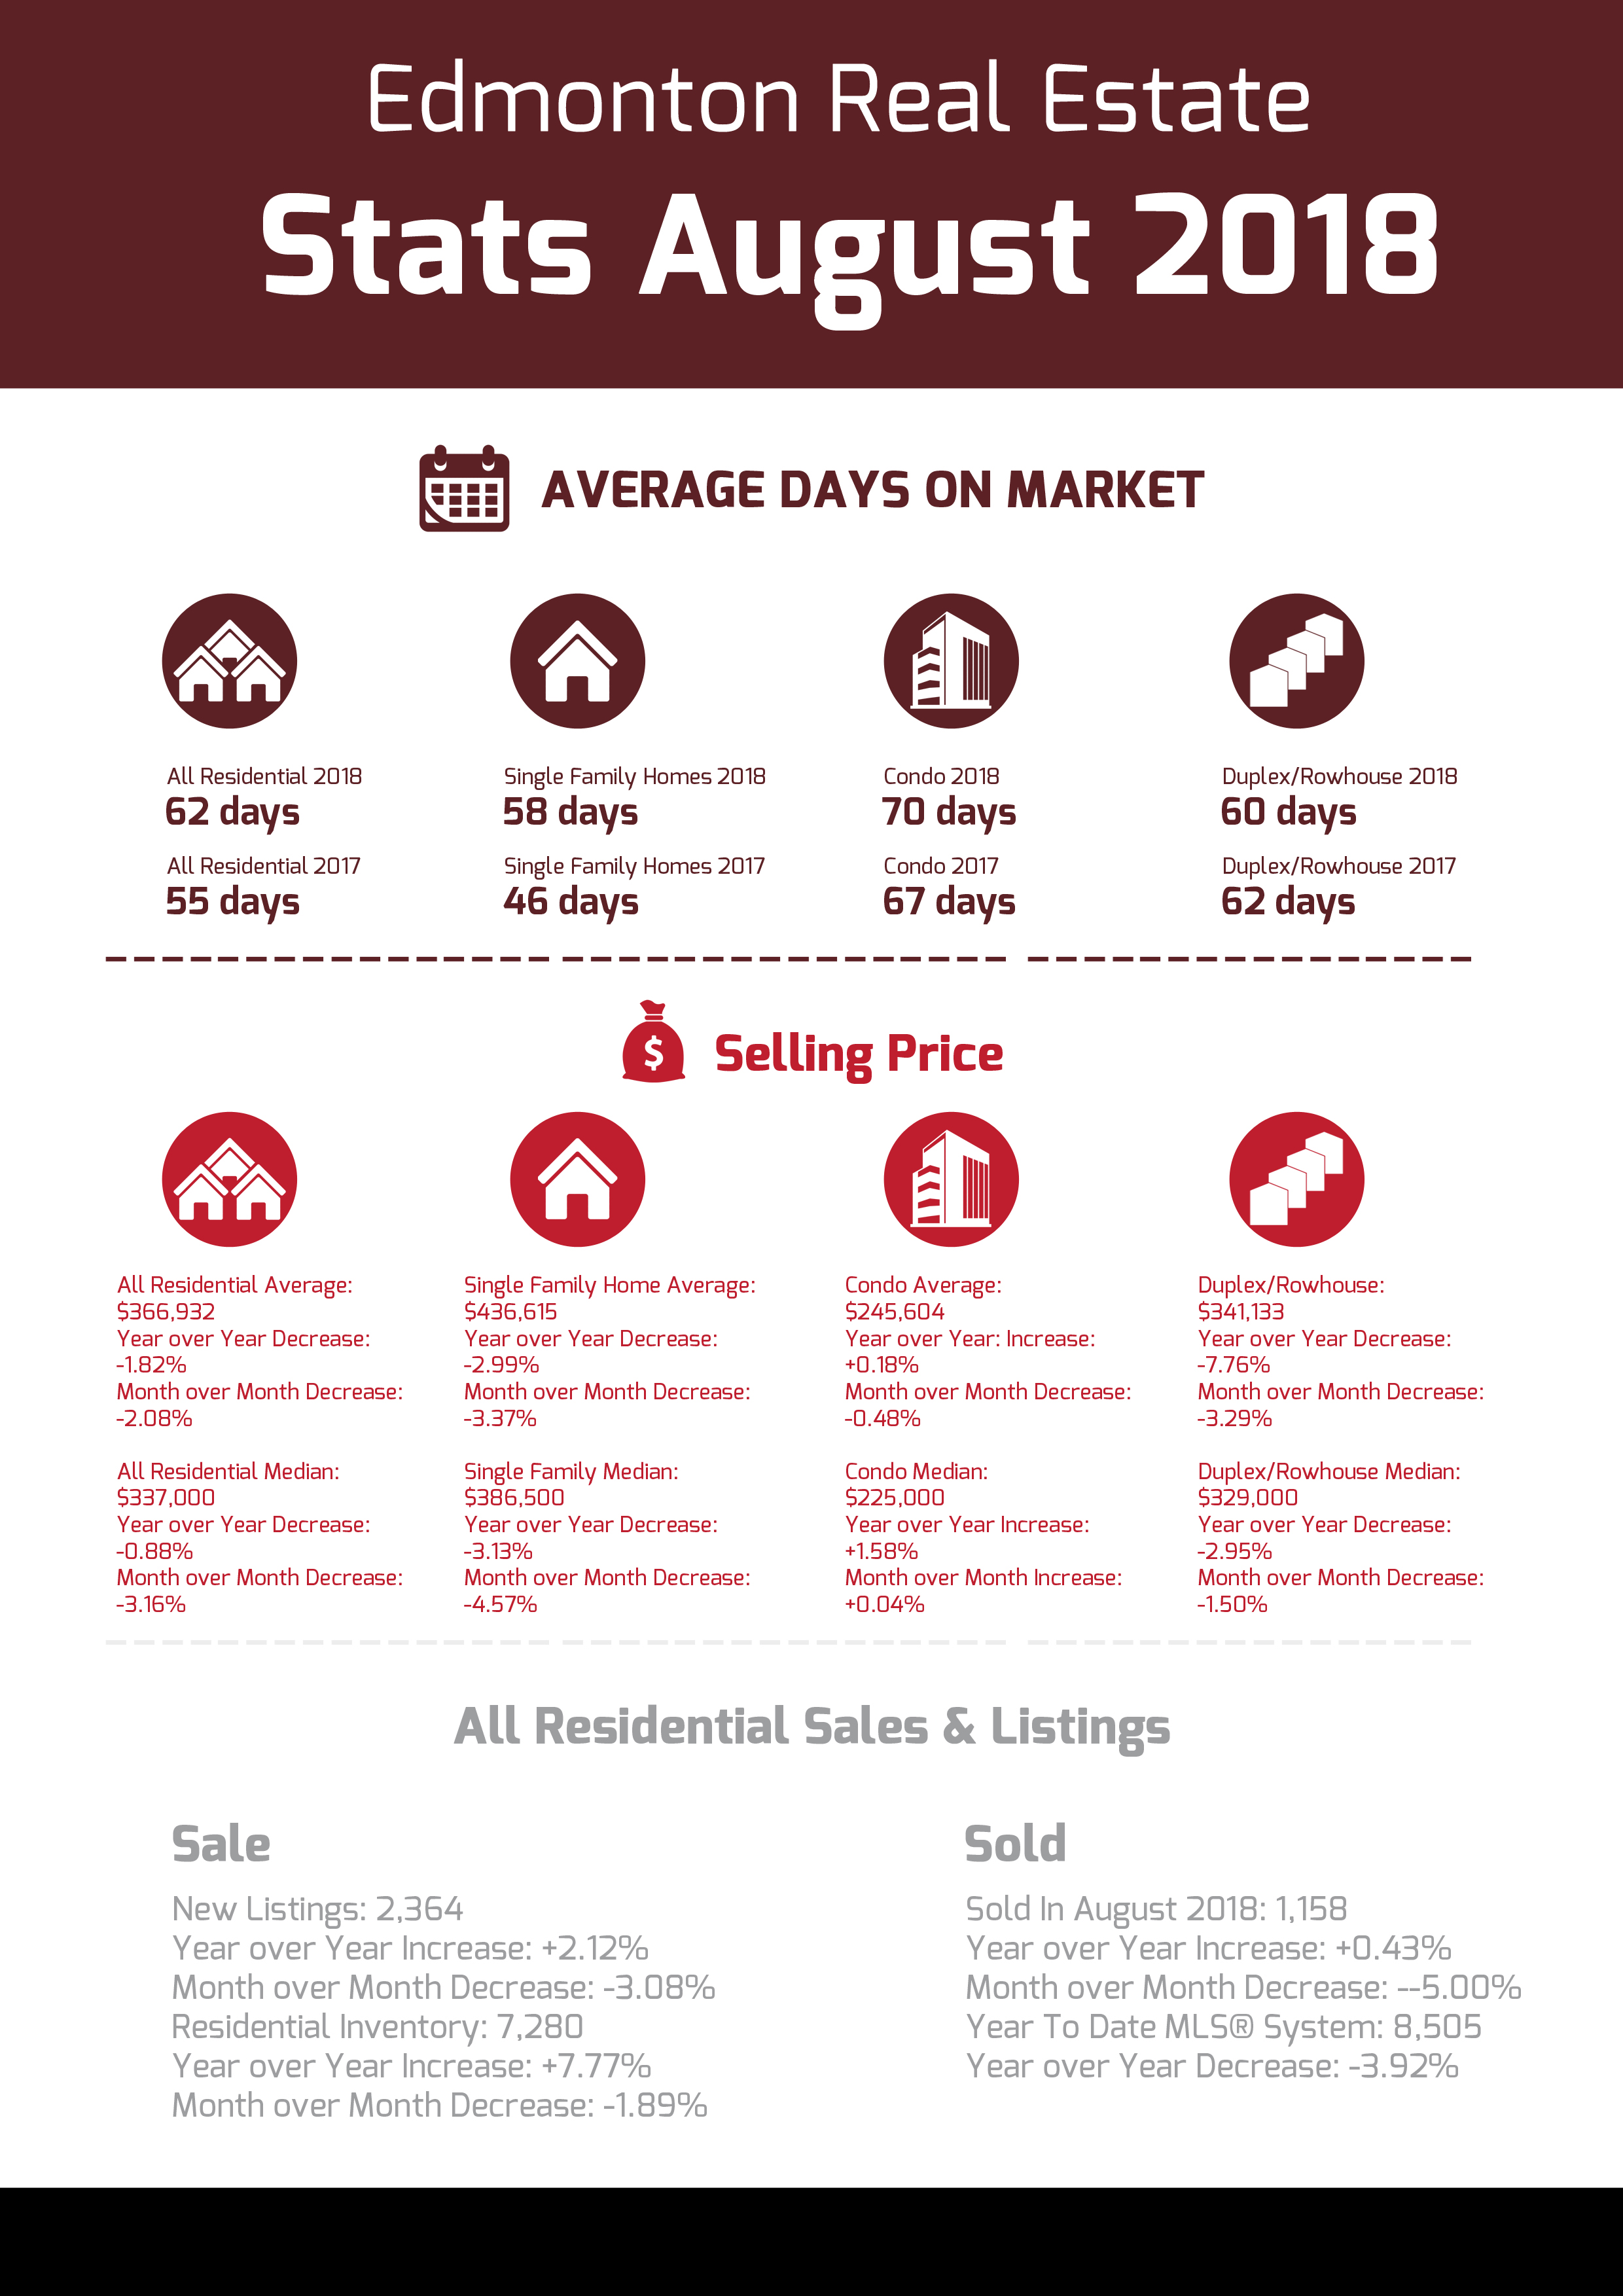 Edmonton Real Estate Stats August 2018